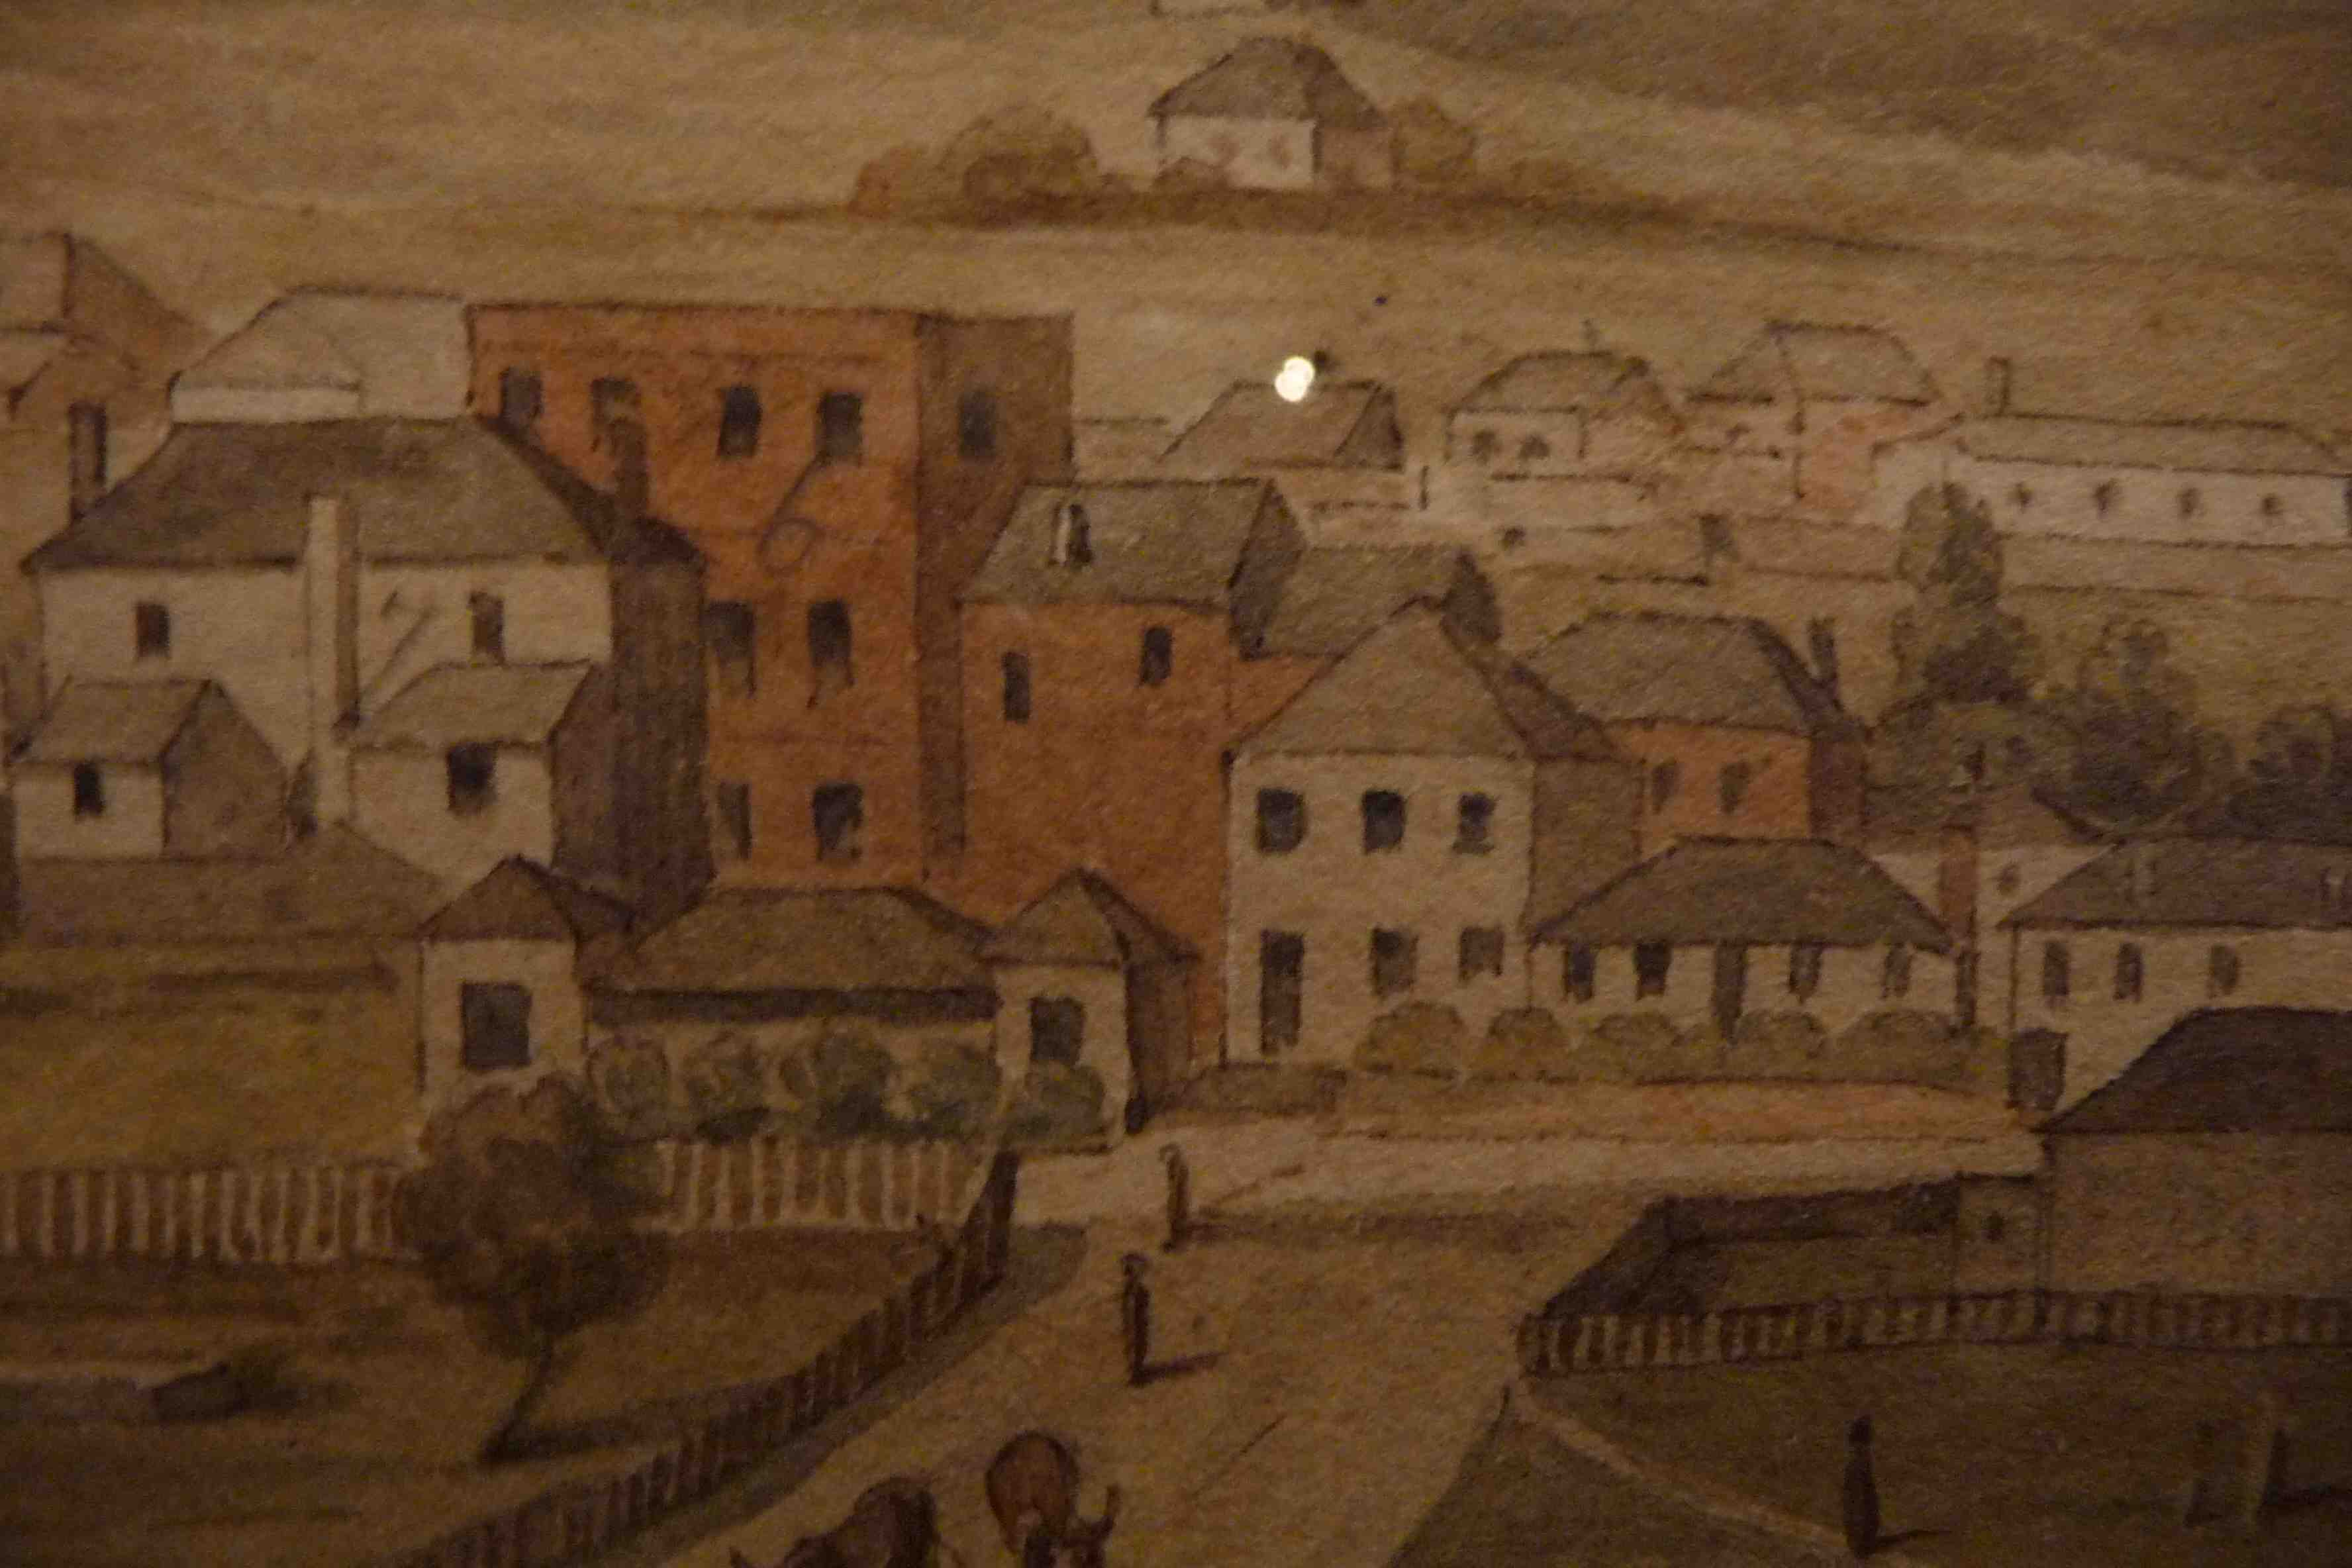 Detail from an Augustus Earle painting of Hobart c1820, showing Dr. Birch's house [n0. 6]